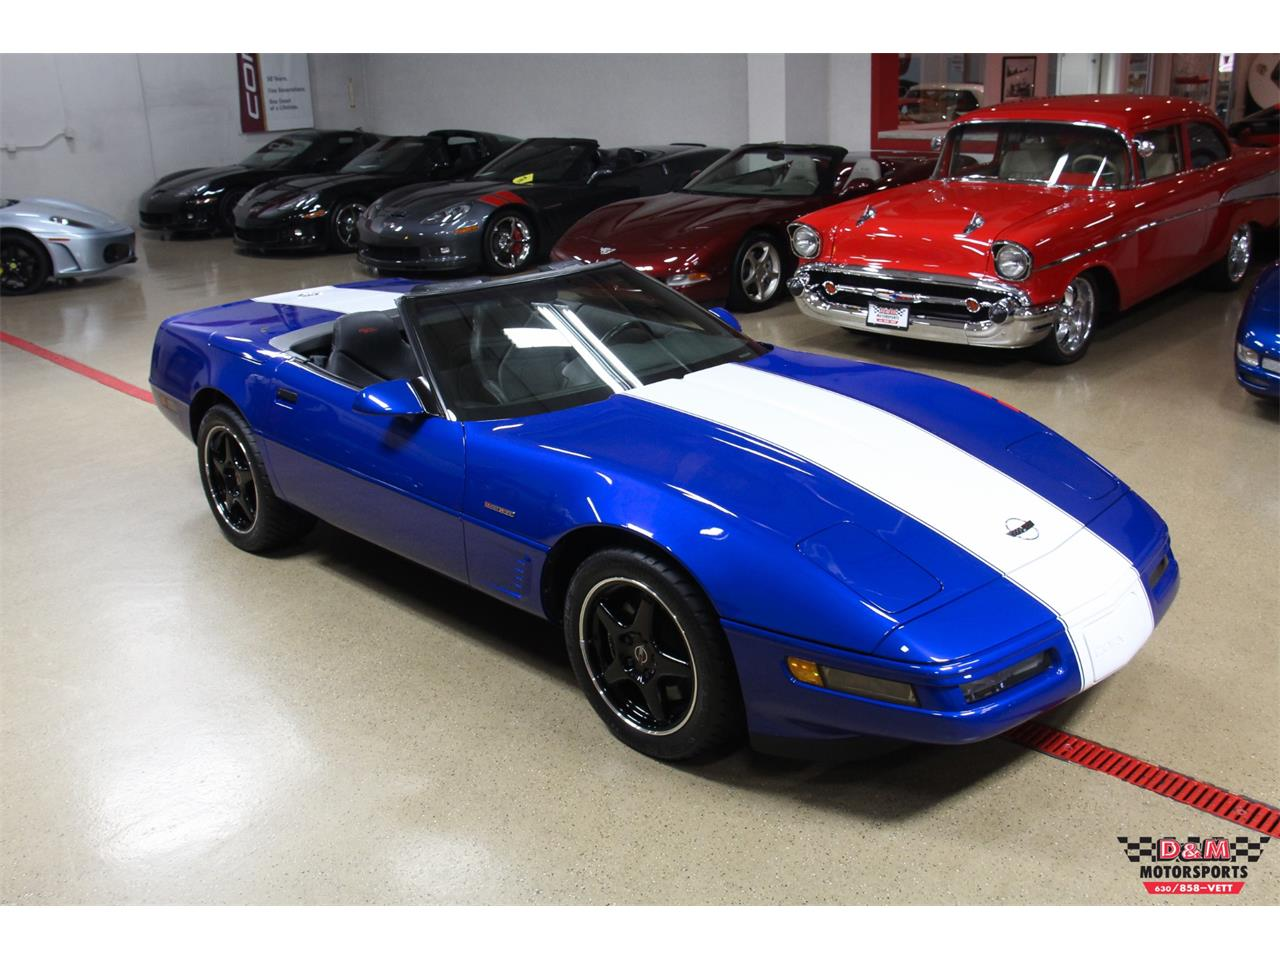 Large Picture of '96 Chevrolet Corvette - $44,995.00 - LV9Z